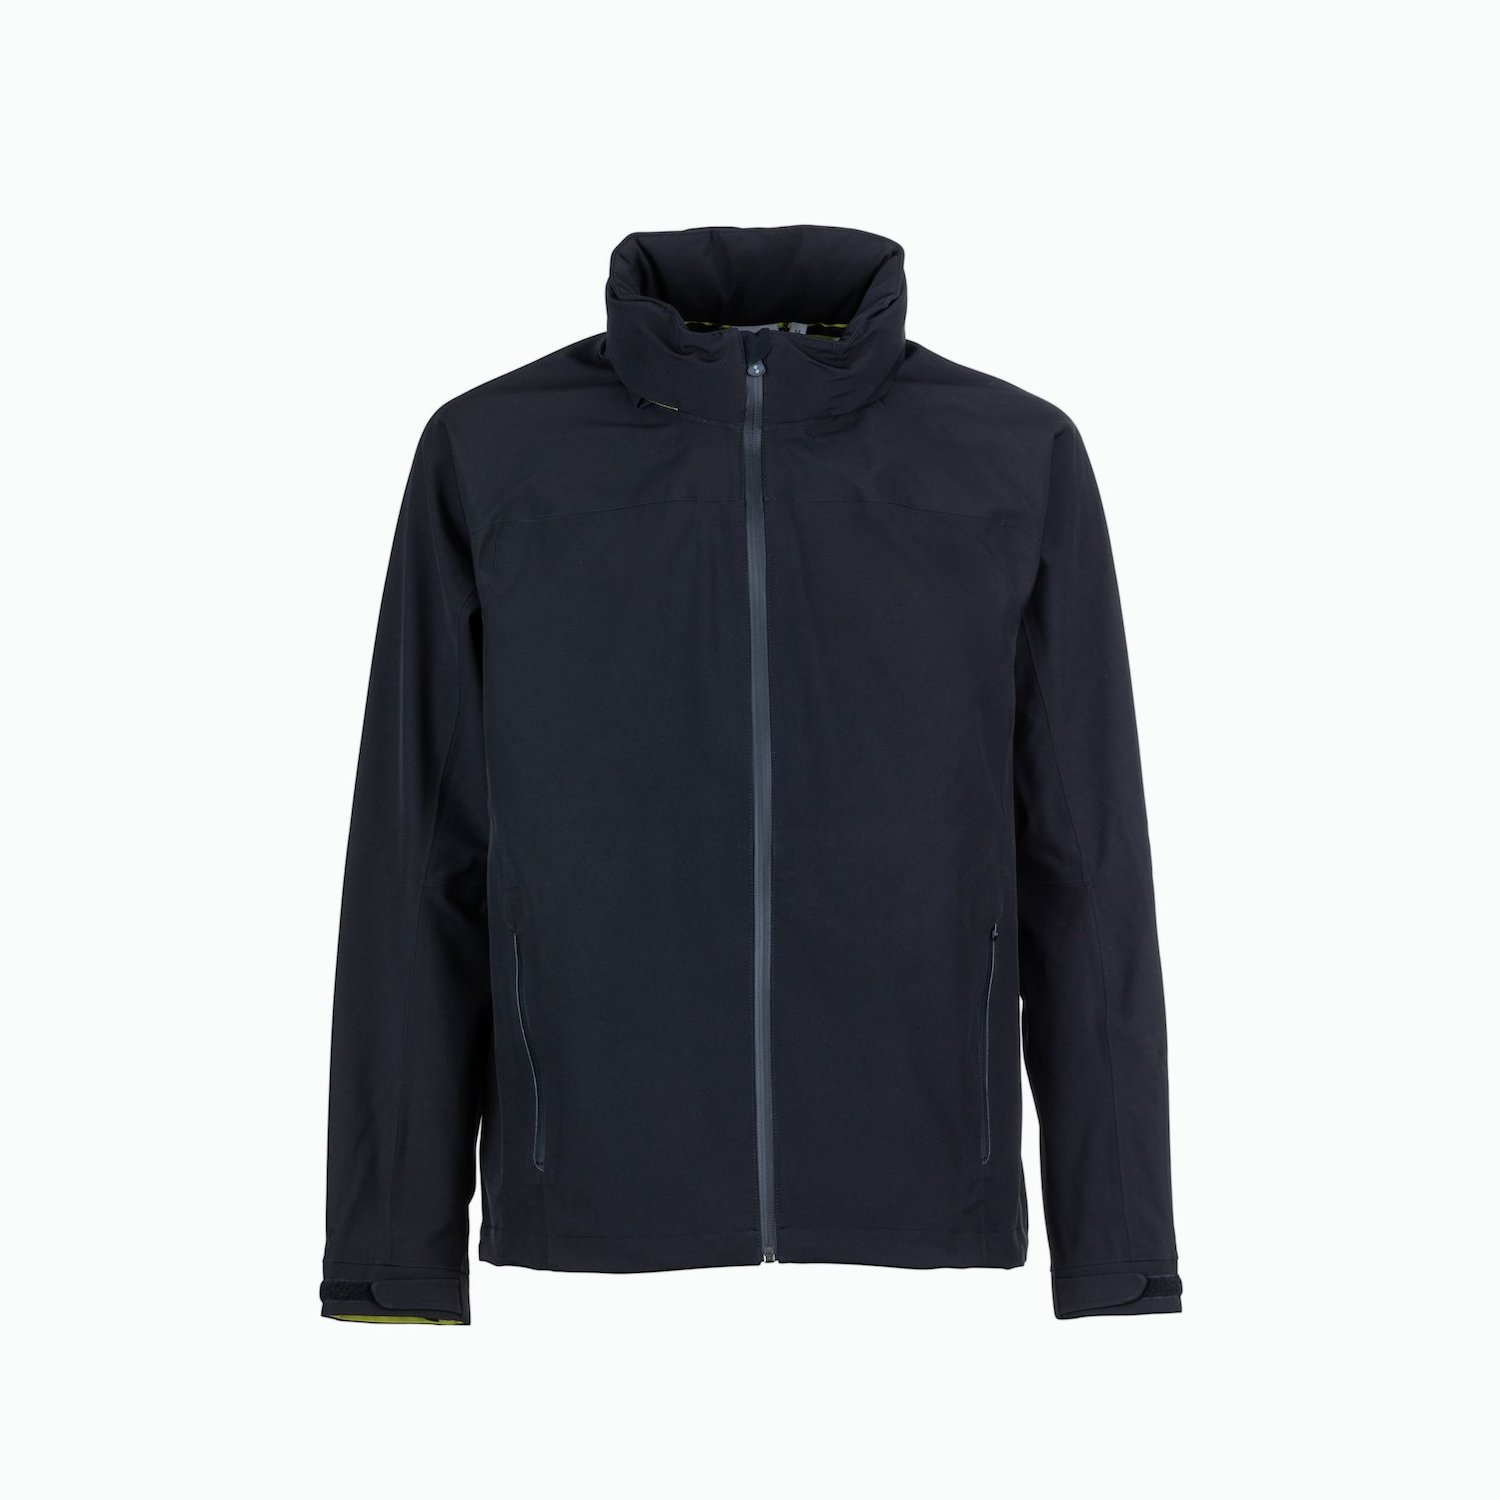 Jacket Noto New (MRS) - Black